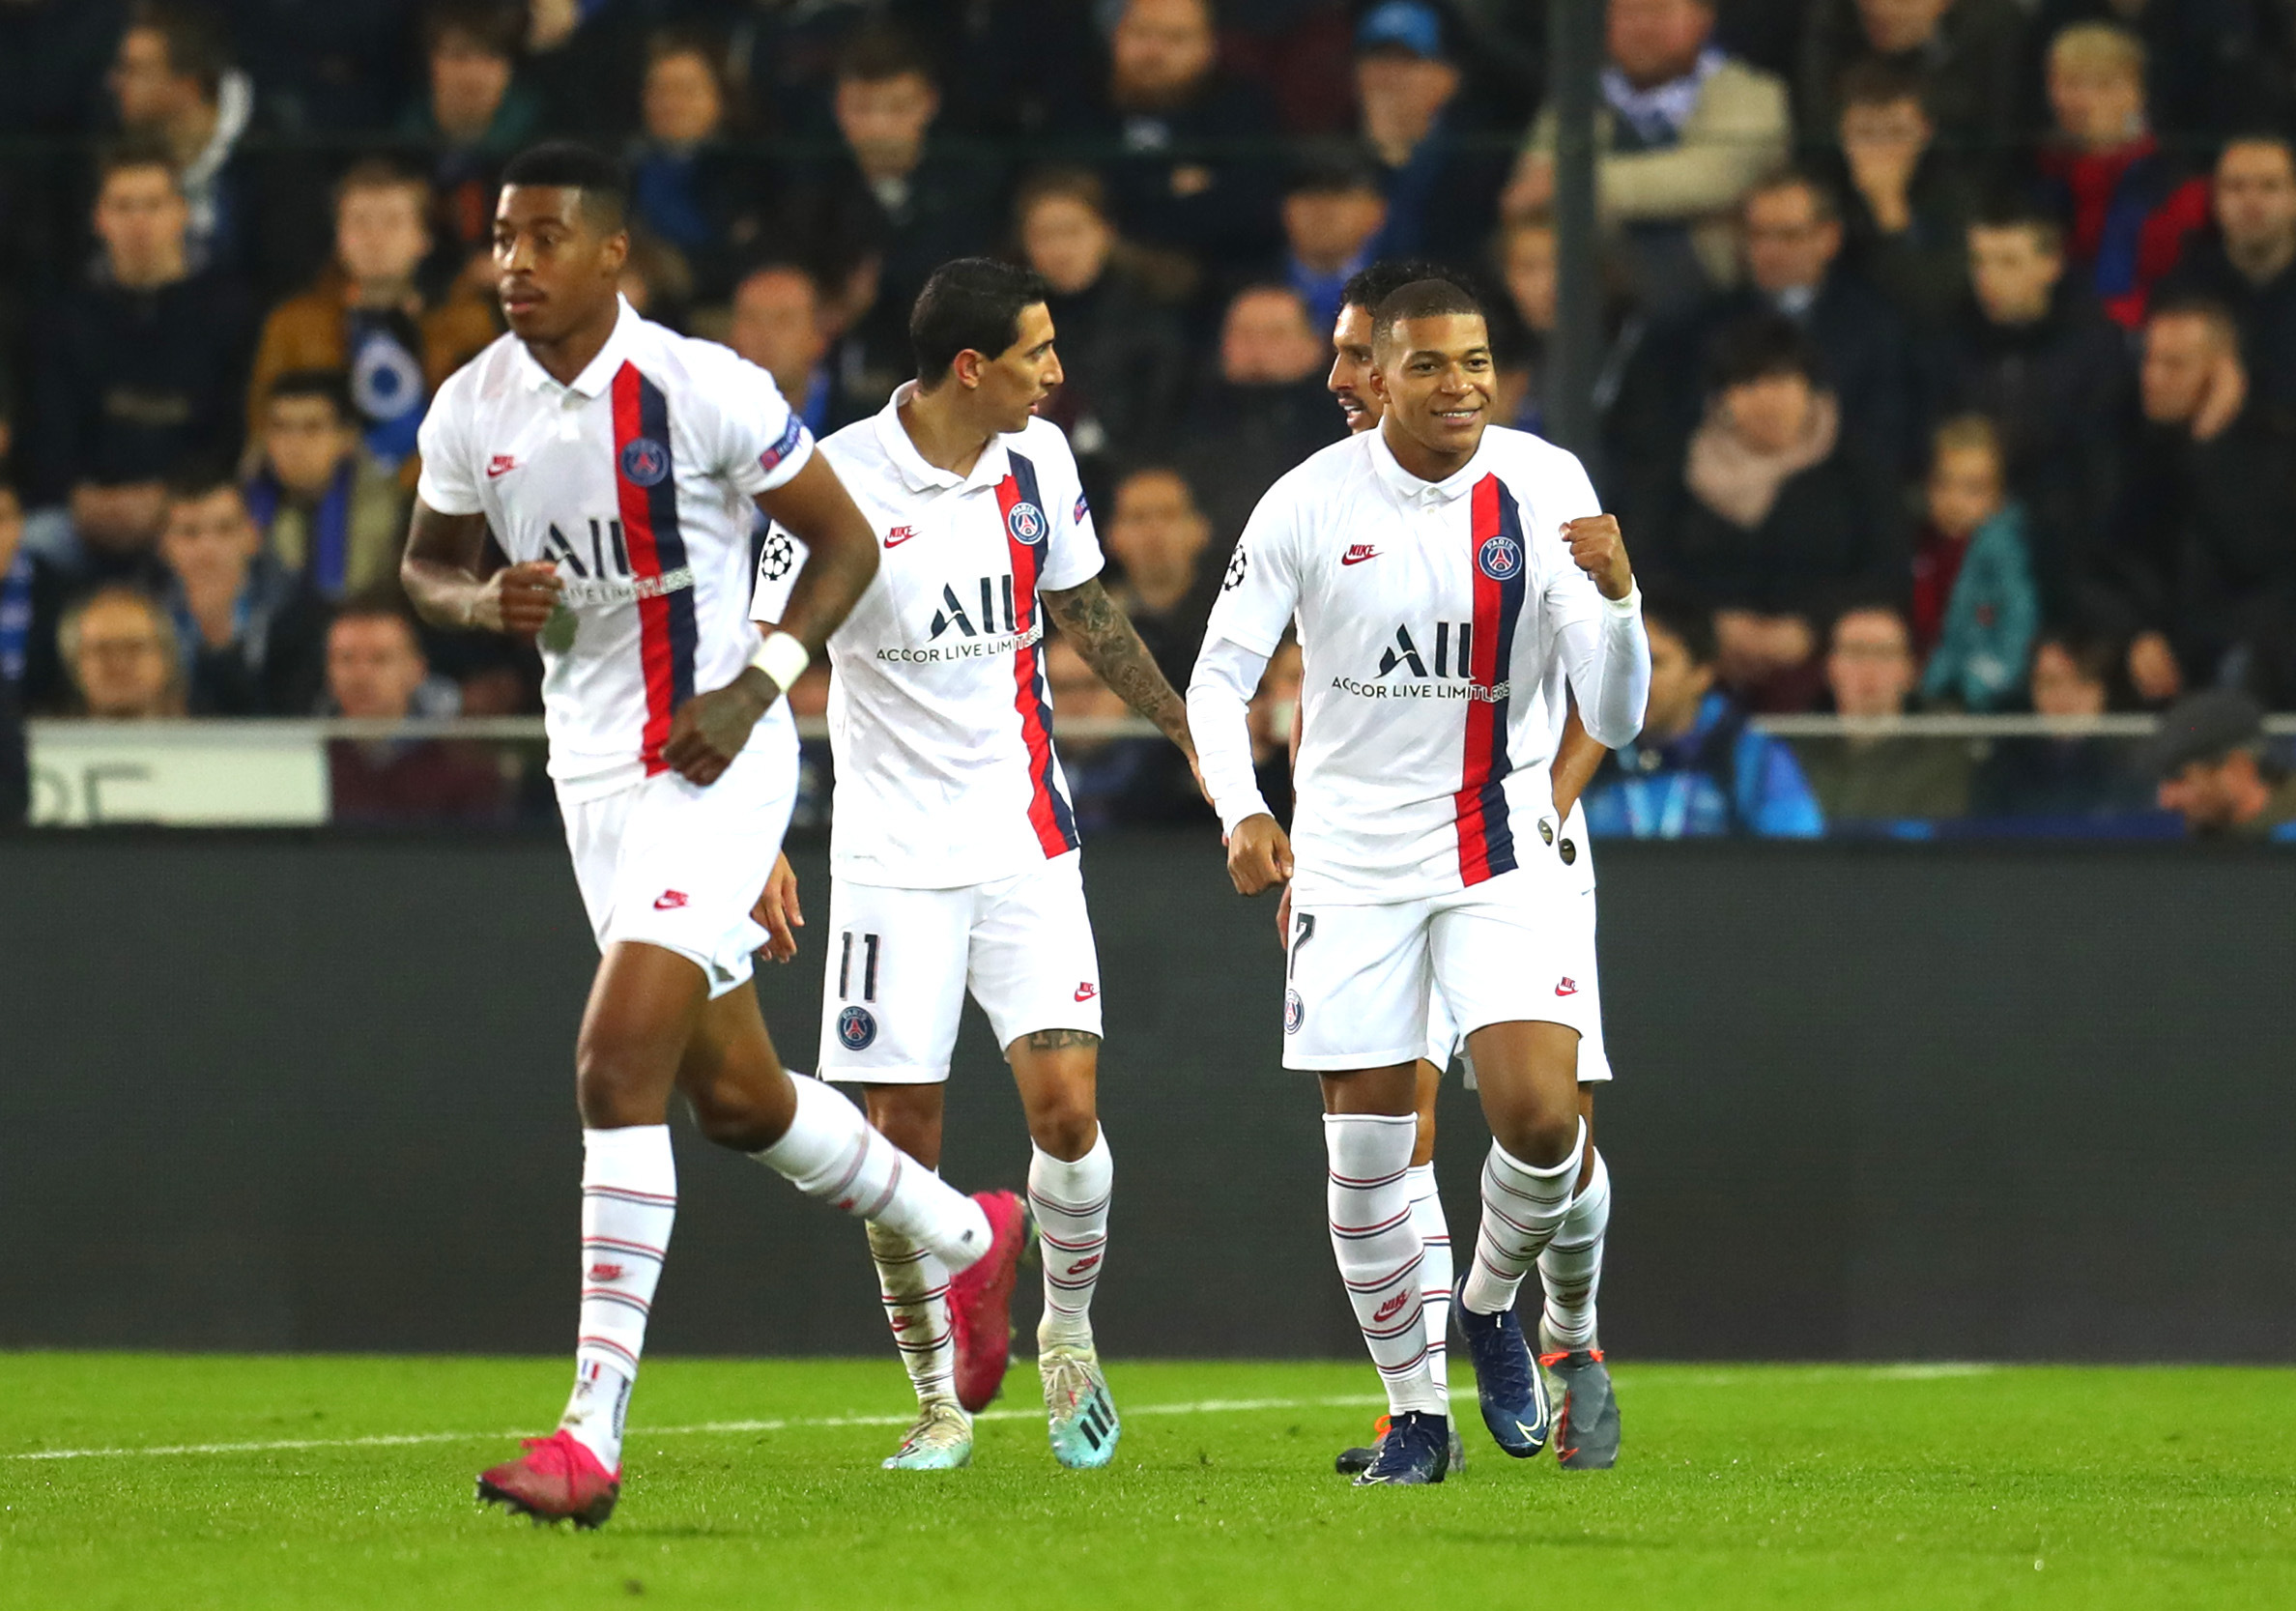 Kylian Mbappe of Paris Saint-Germain celebrates with teammates after scoring his team's second goal